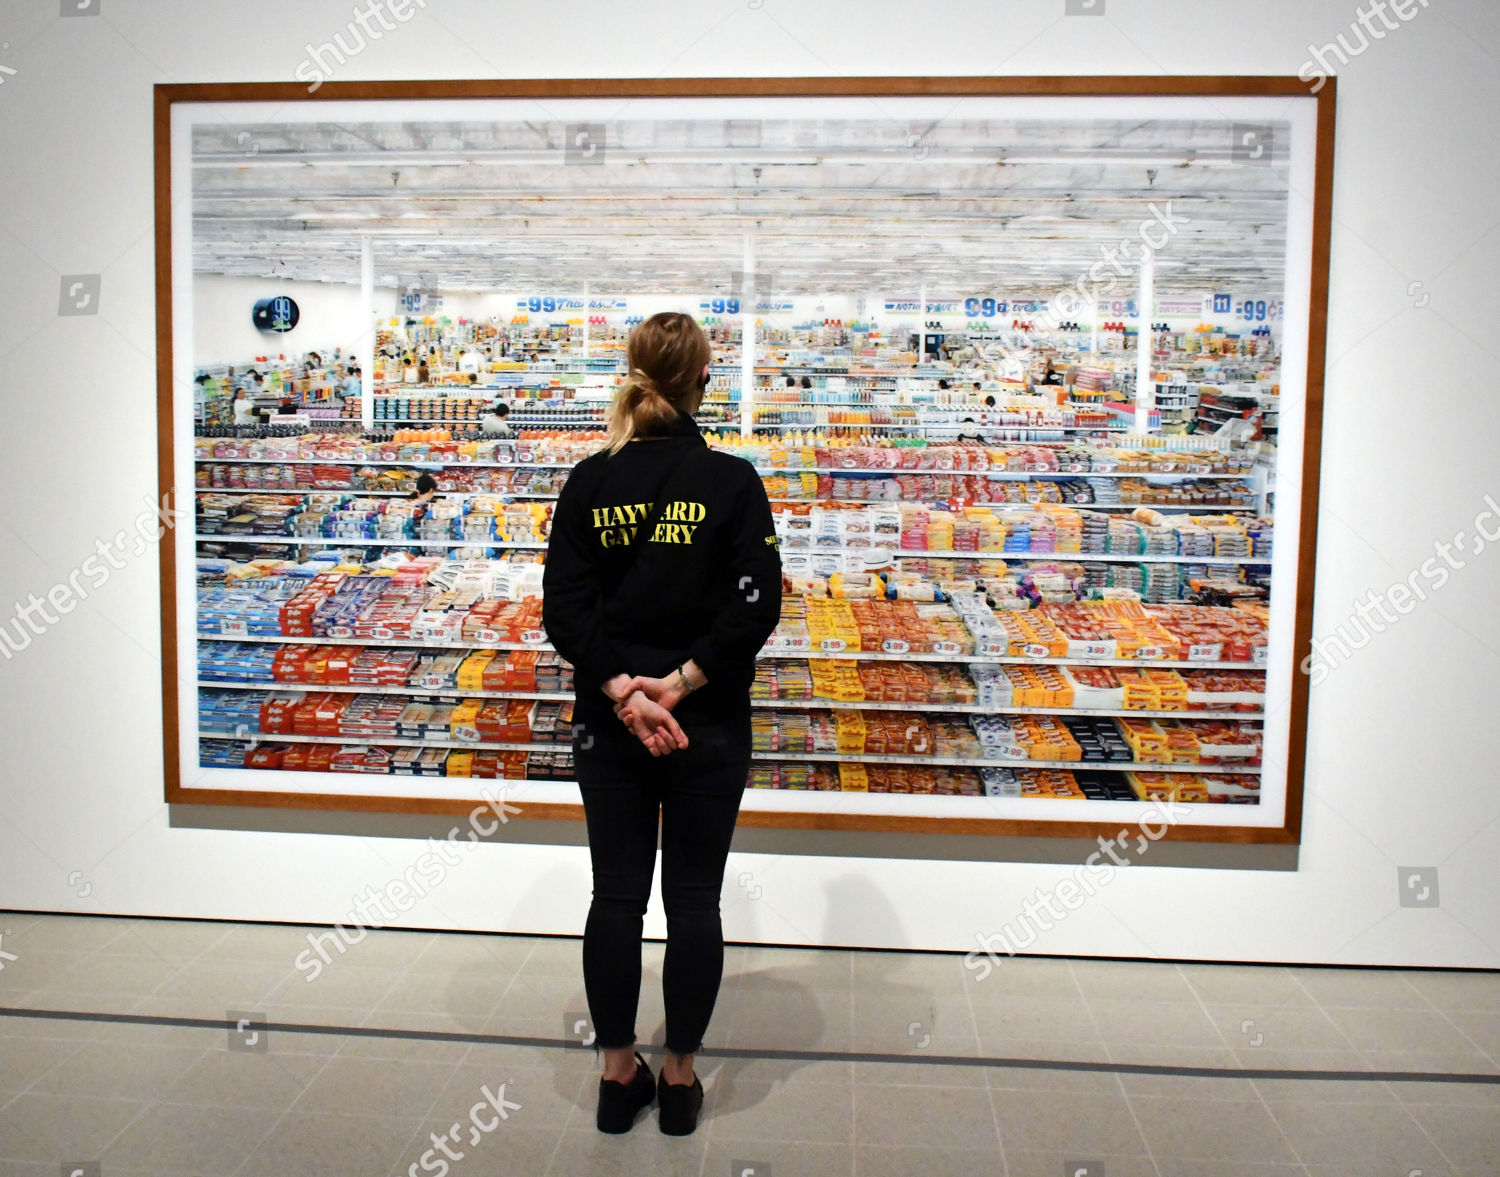 Andreas Gursky Exhibition At The Hayward Gallery London UK